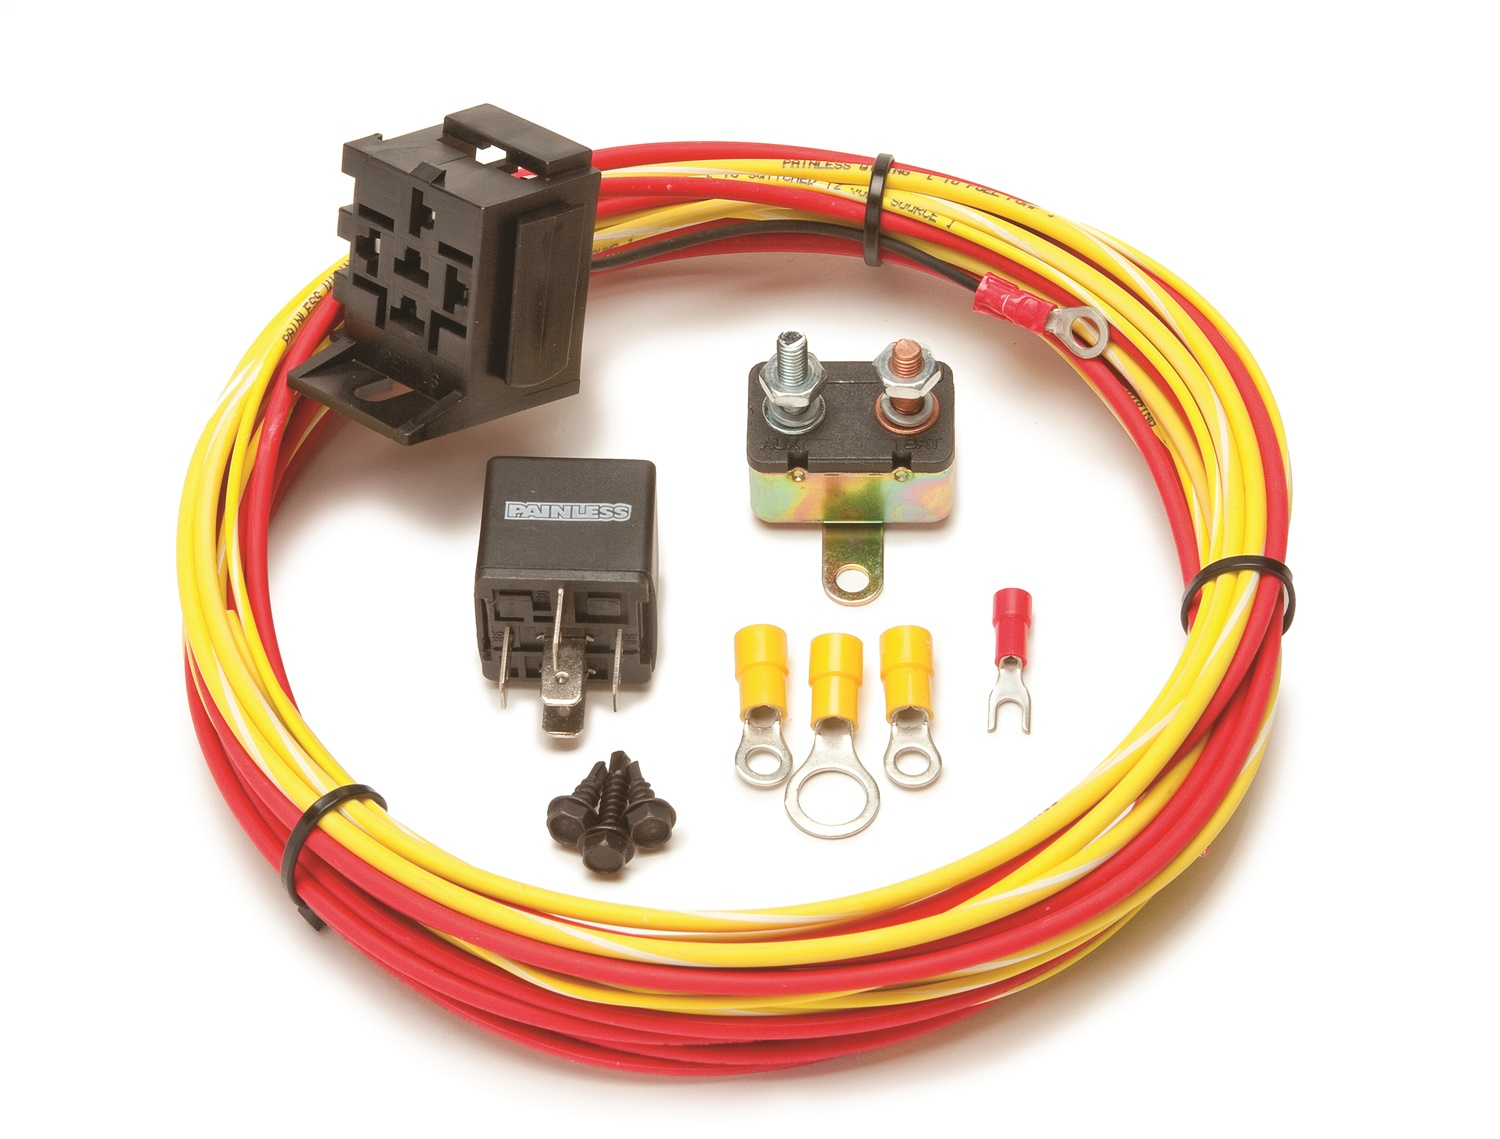 painless wiring 50102 universal 30 amp fuel pump relay harness kit rh ebay com Painless Wiring Harness painless wiring/auxiliary light relay kit